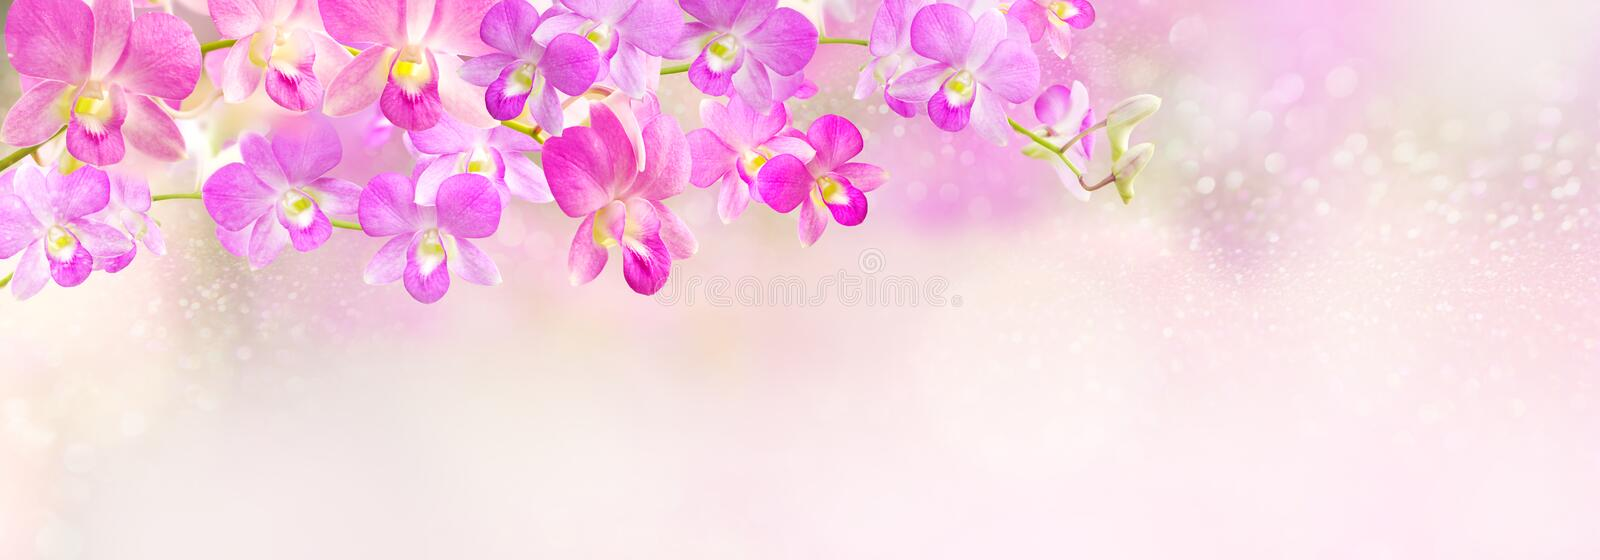 Pink and purple orchid flower header,banner background royalty free stock photos